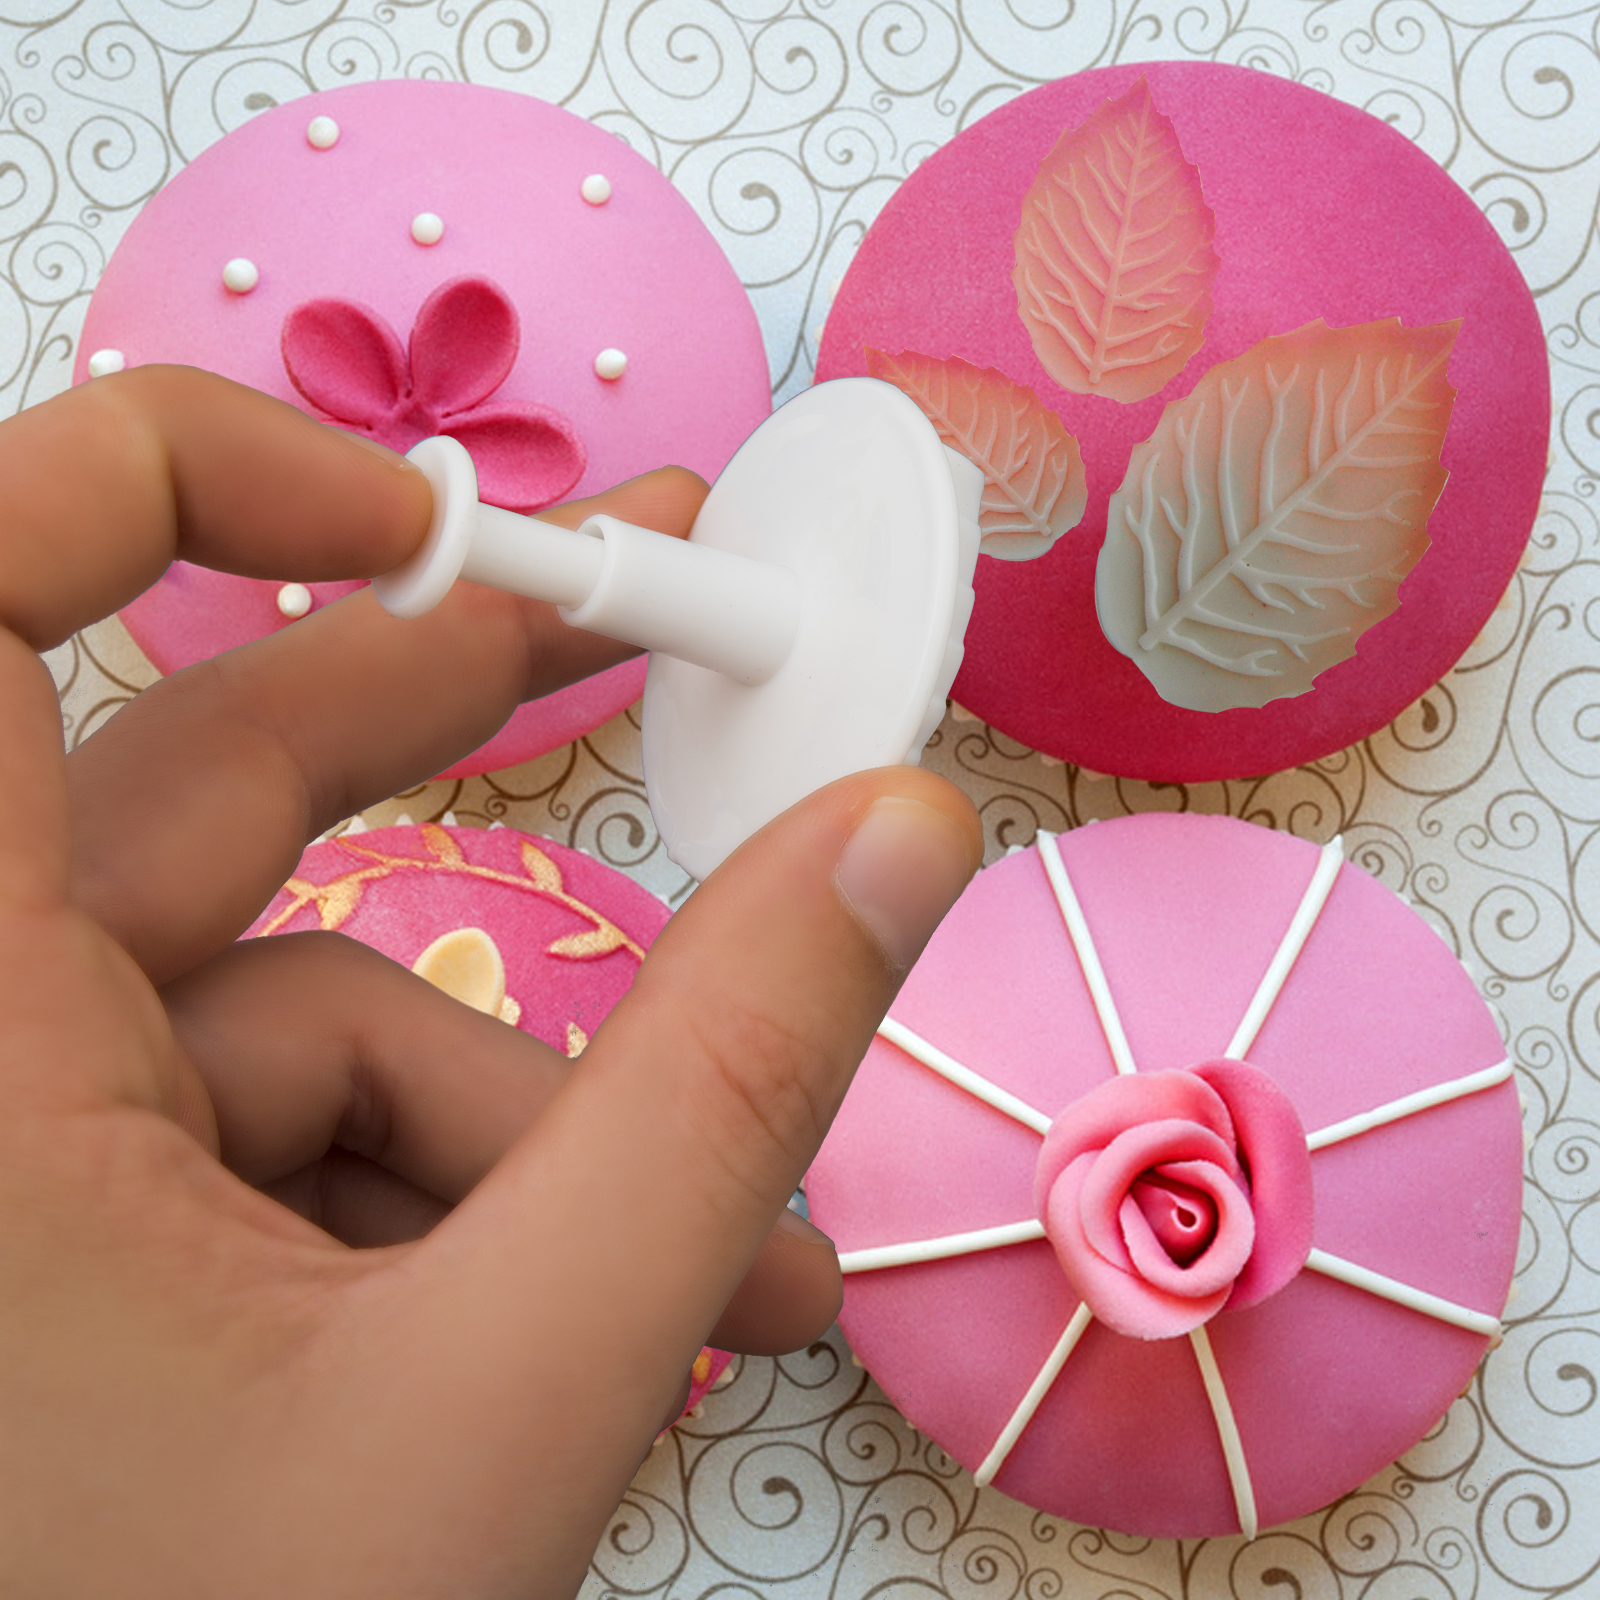 Butterfly Cake Decoration Uk : Hillys Kitchen Fondant Plunger Cutters, Butterfly & Leaf ...